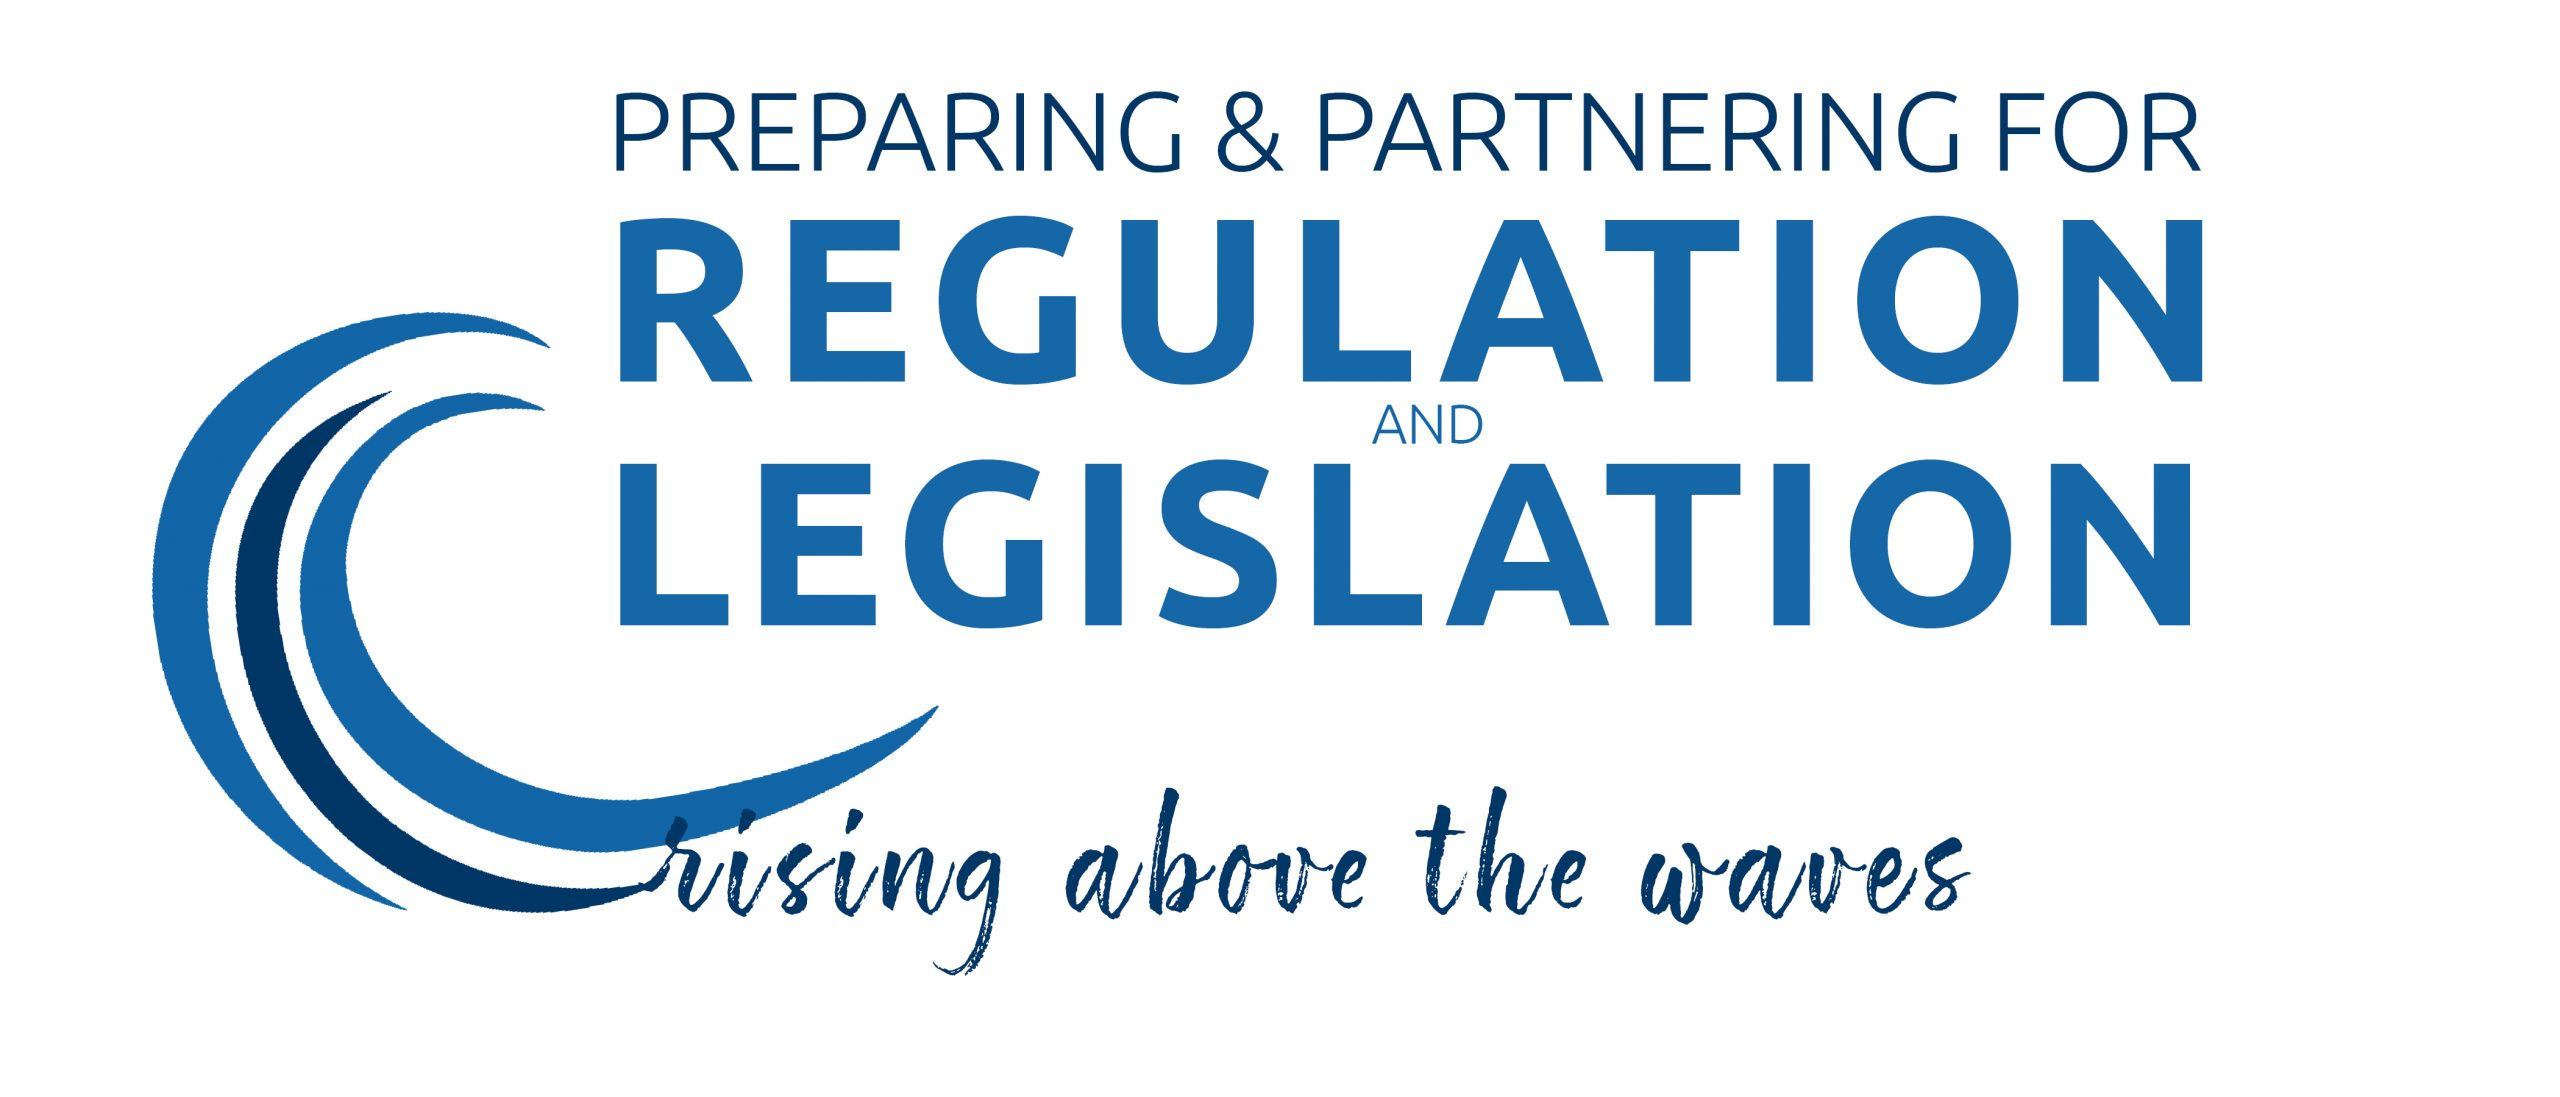 Logo for the 2019 education meeting: Rising above the waves preparing and partnering for regulation and legislation.